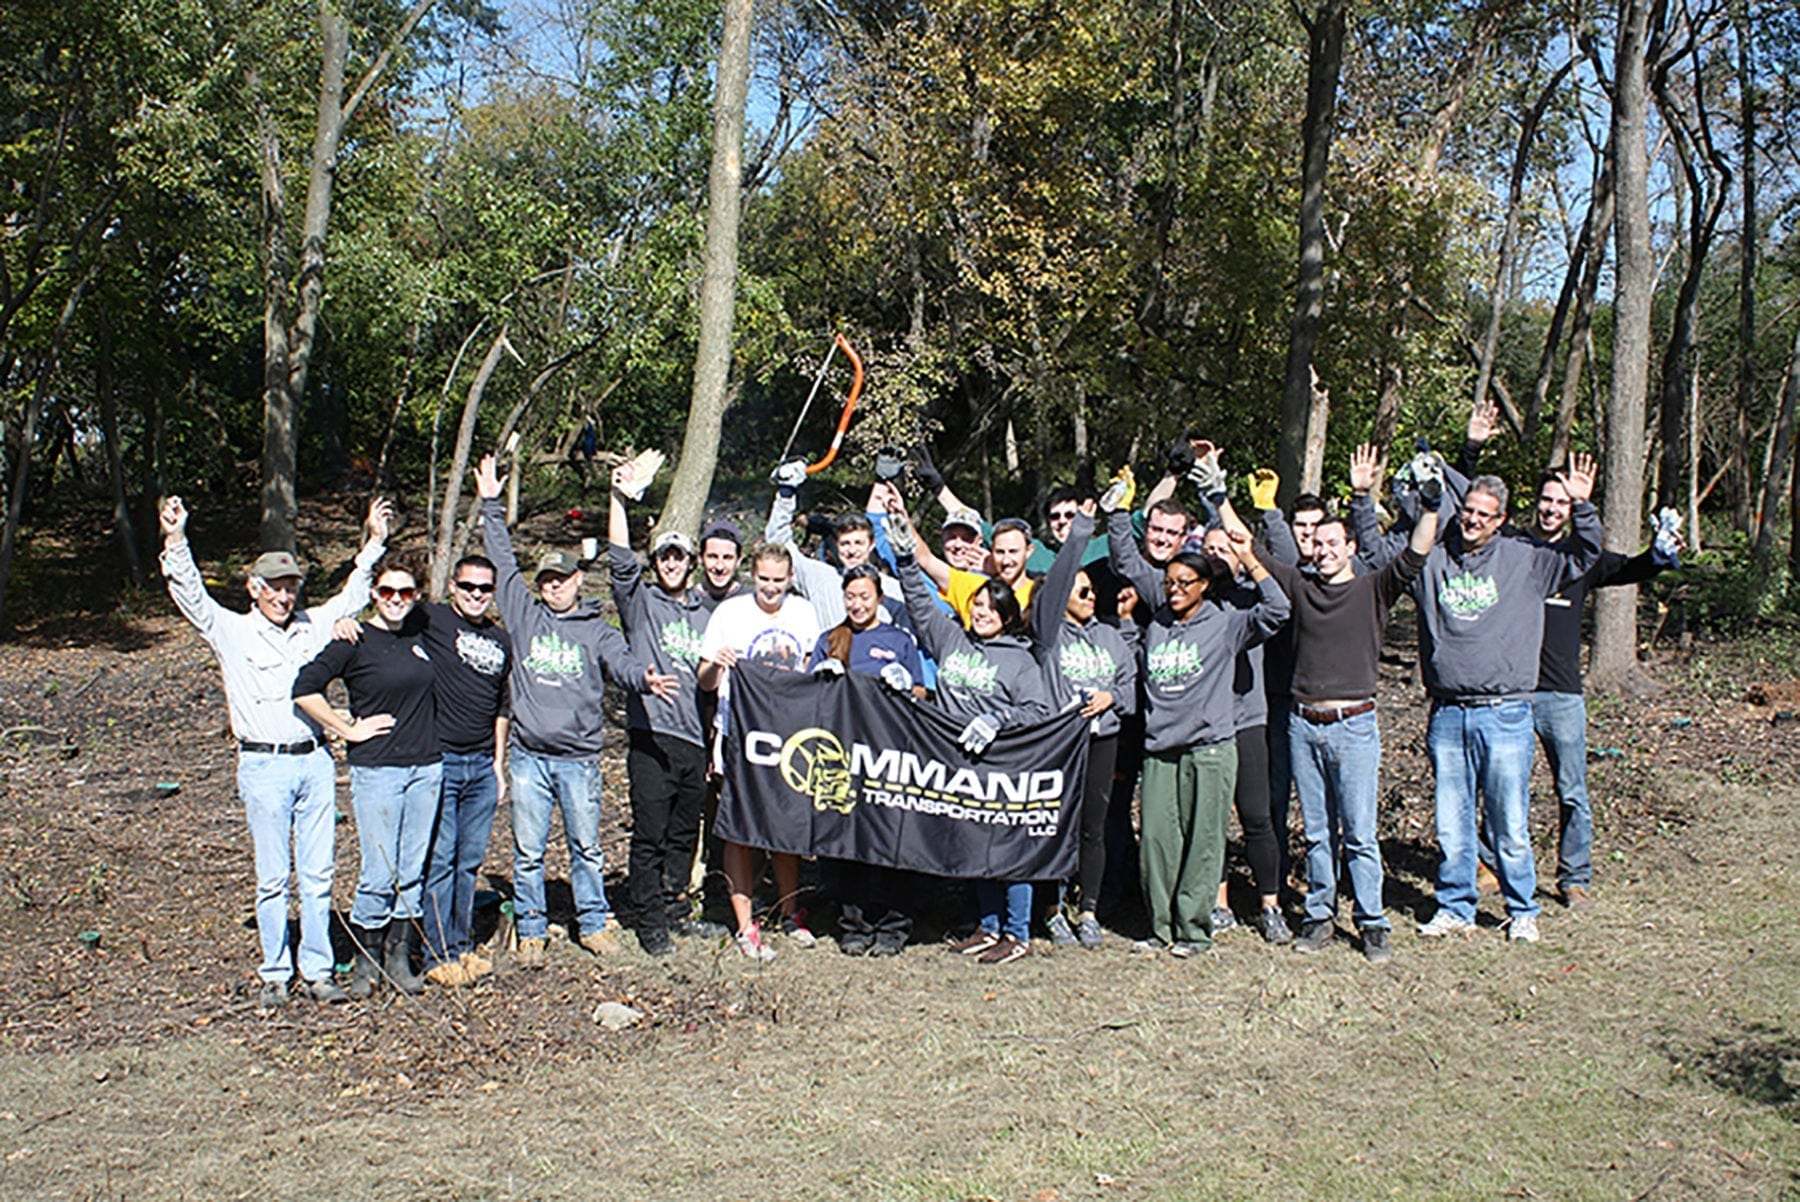 company sponsor volunteer day at backyard nature center